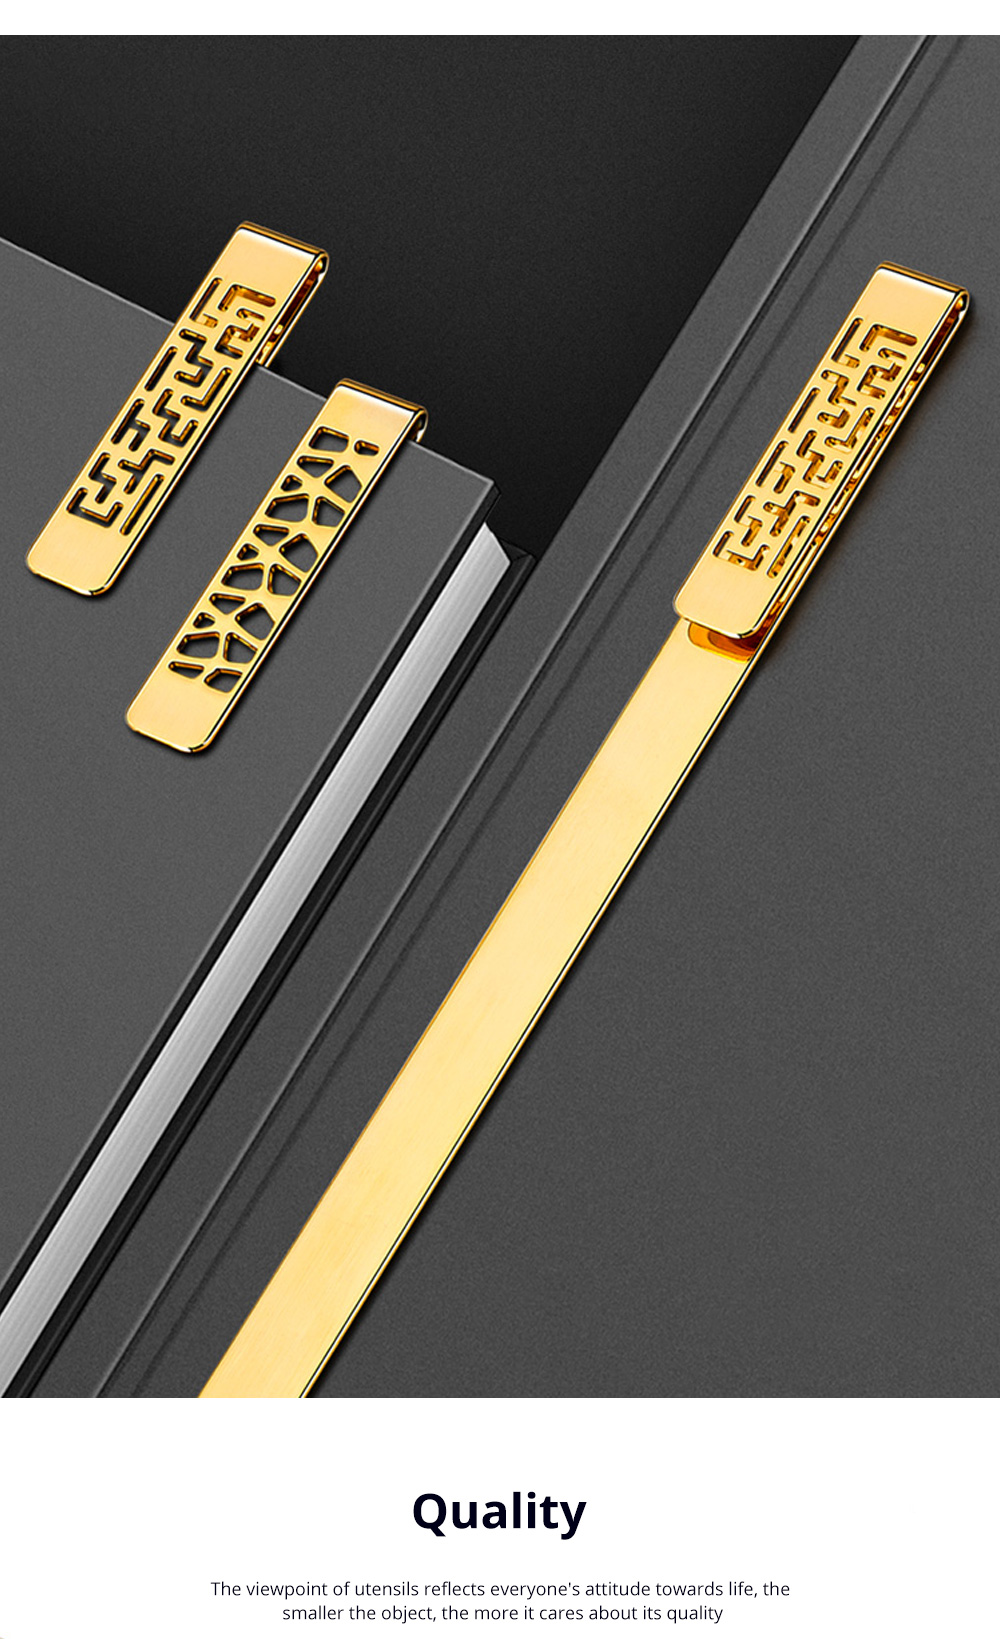 Exquisite Student Stationery Vintage Hollowed Out Traditional Culture Design Brass Metal Bookmark Pack Gift Box 3